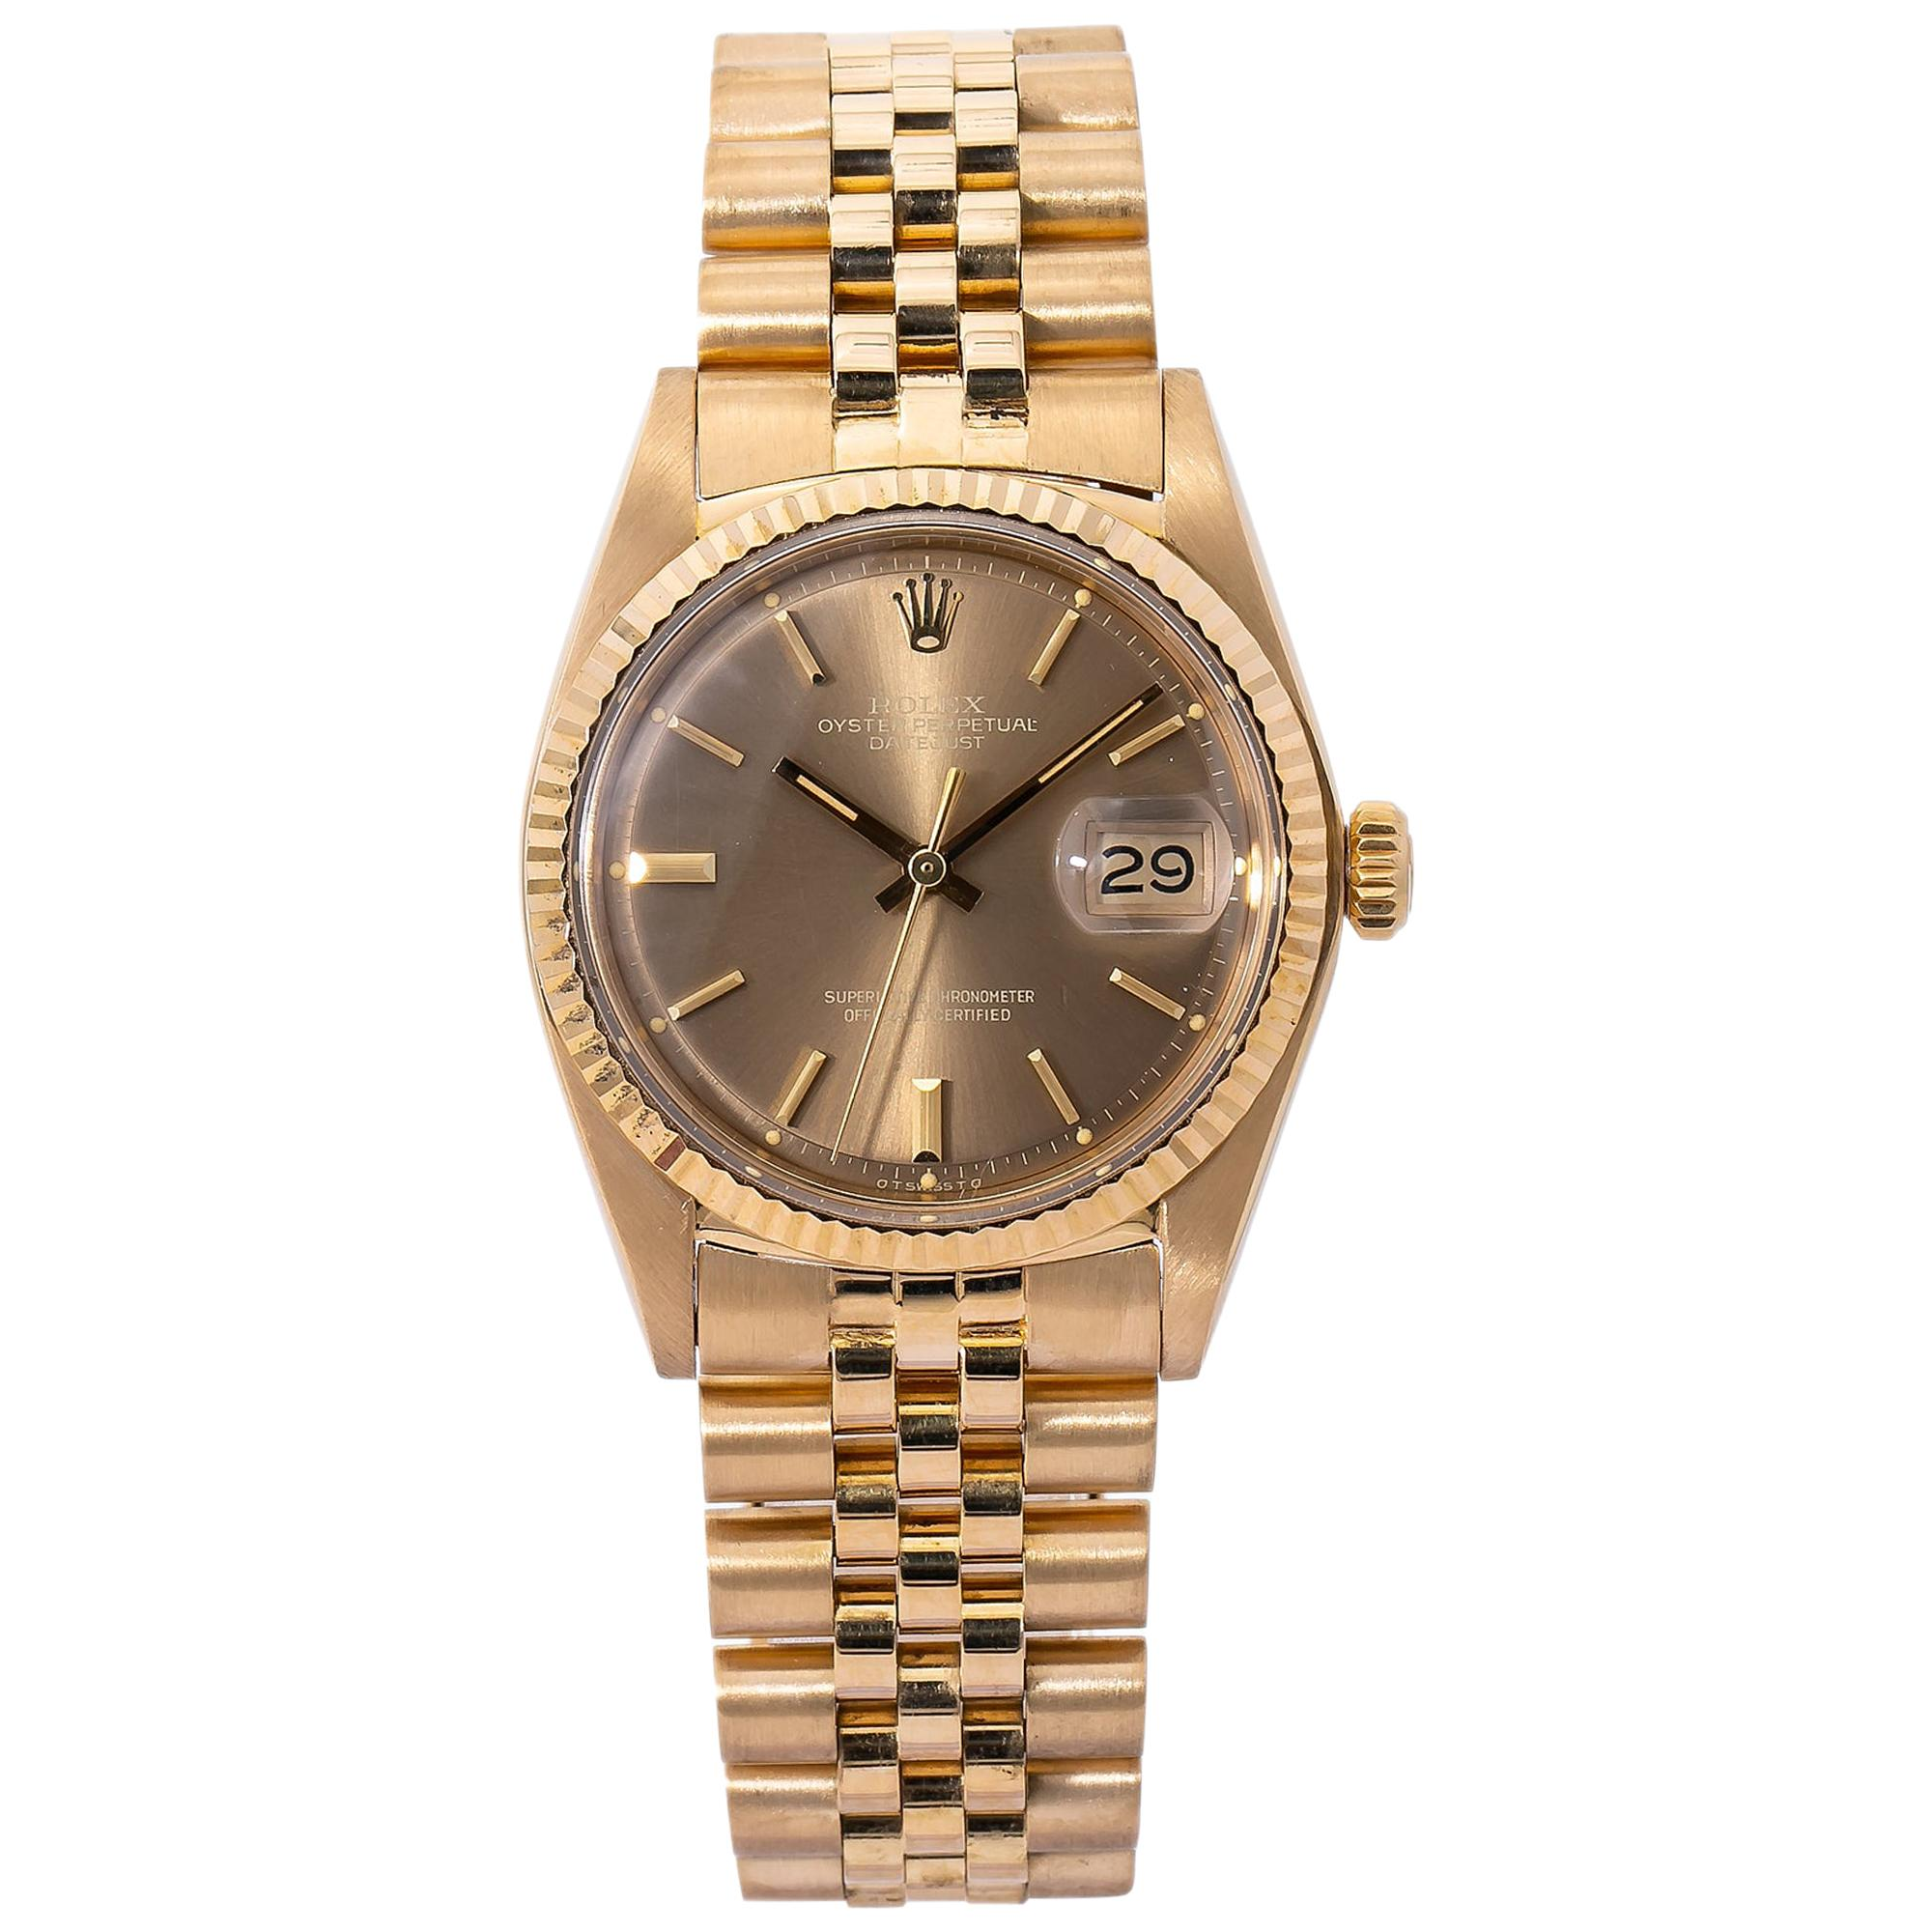 Rolex Datejust Jubiless 1601 Vintage 18k Yellow Gold Champagne Dial Men's